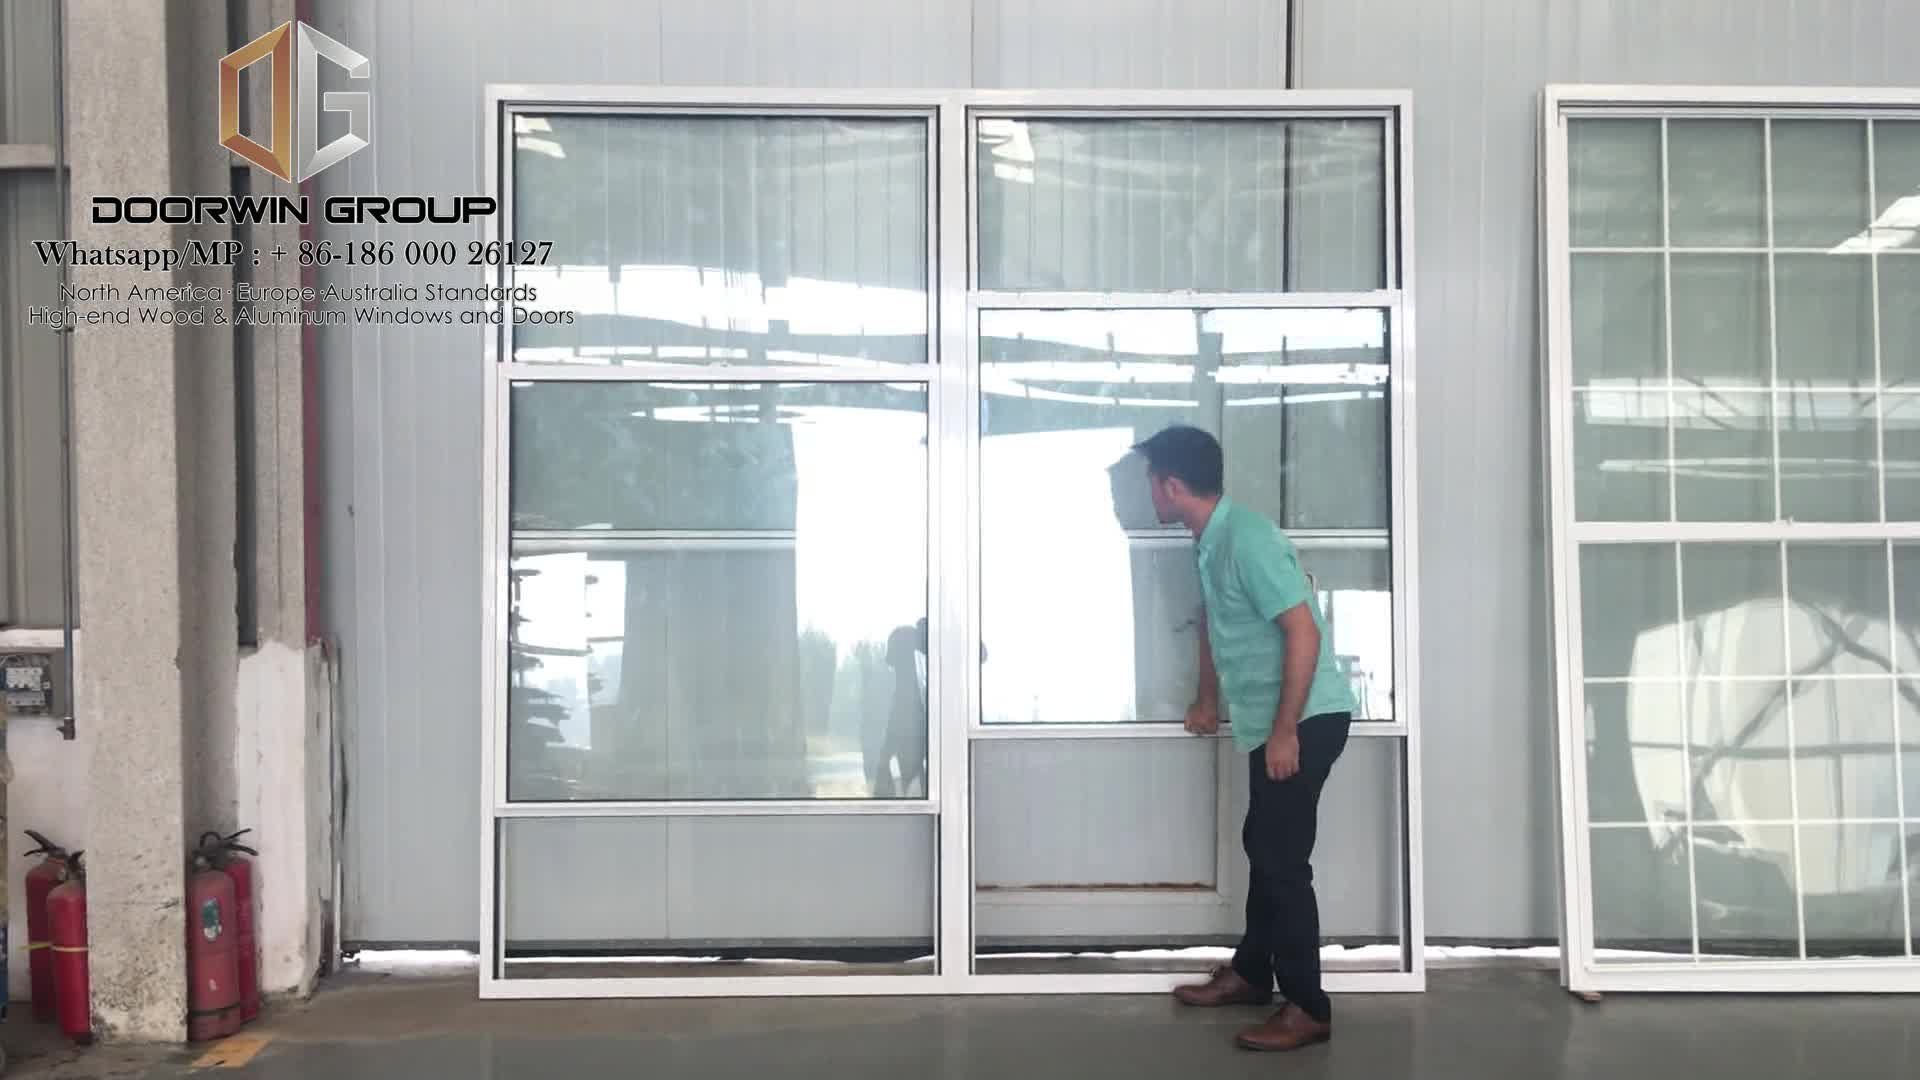 Ultra large double hung with grill designs aluminium for Vertical sliding window design